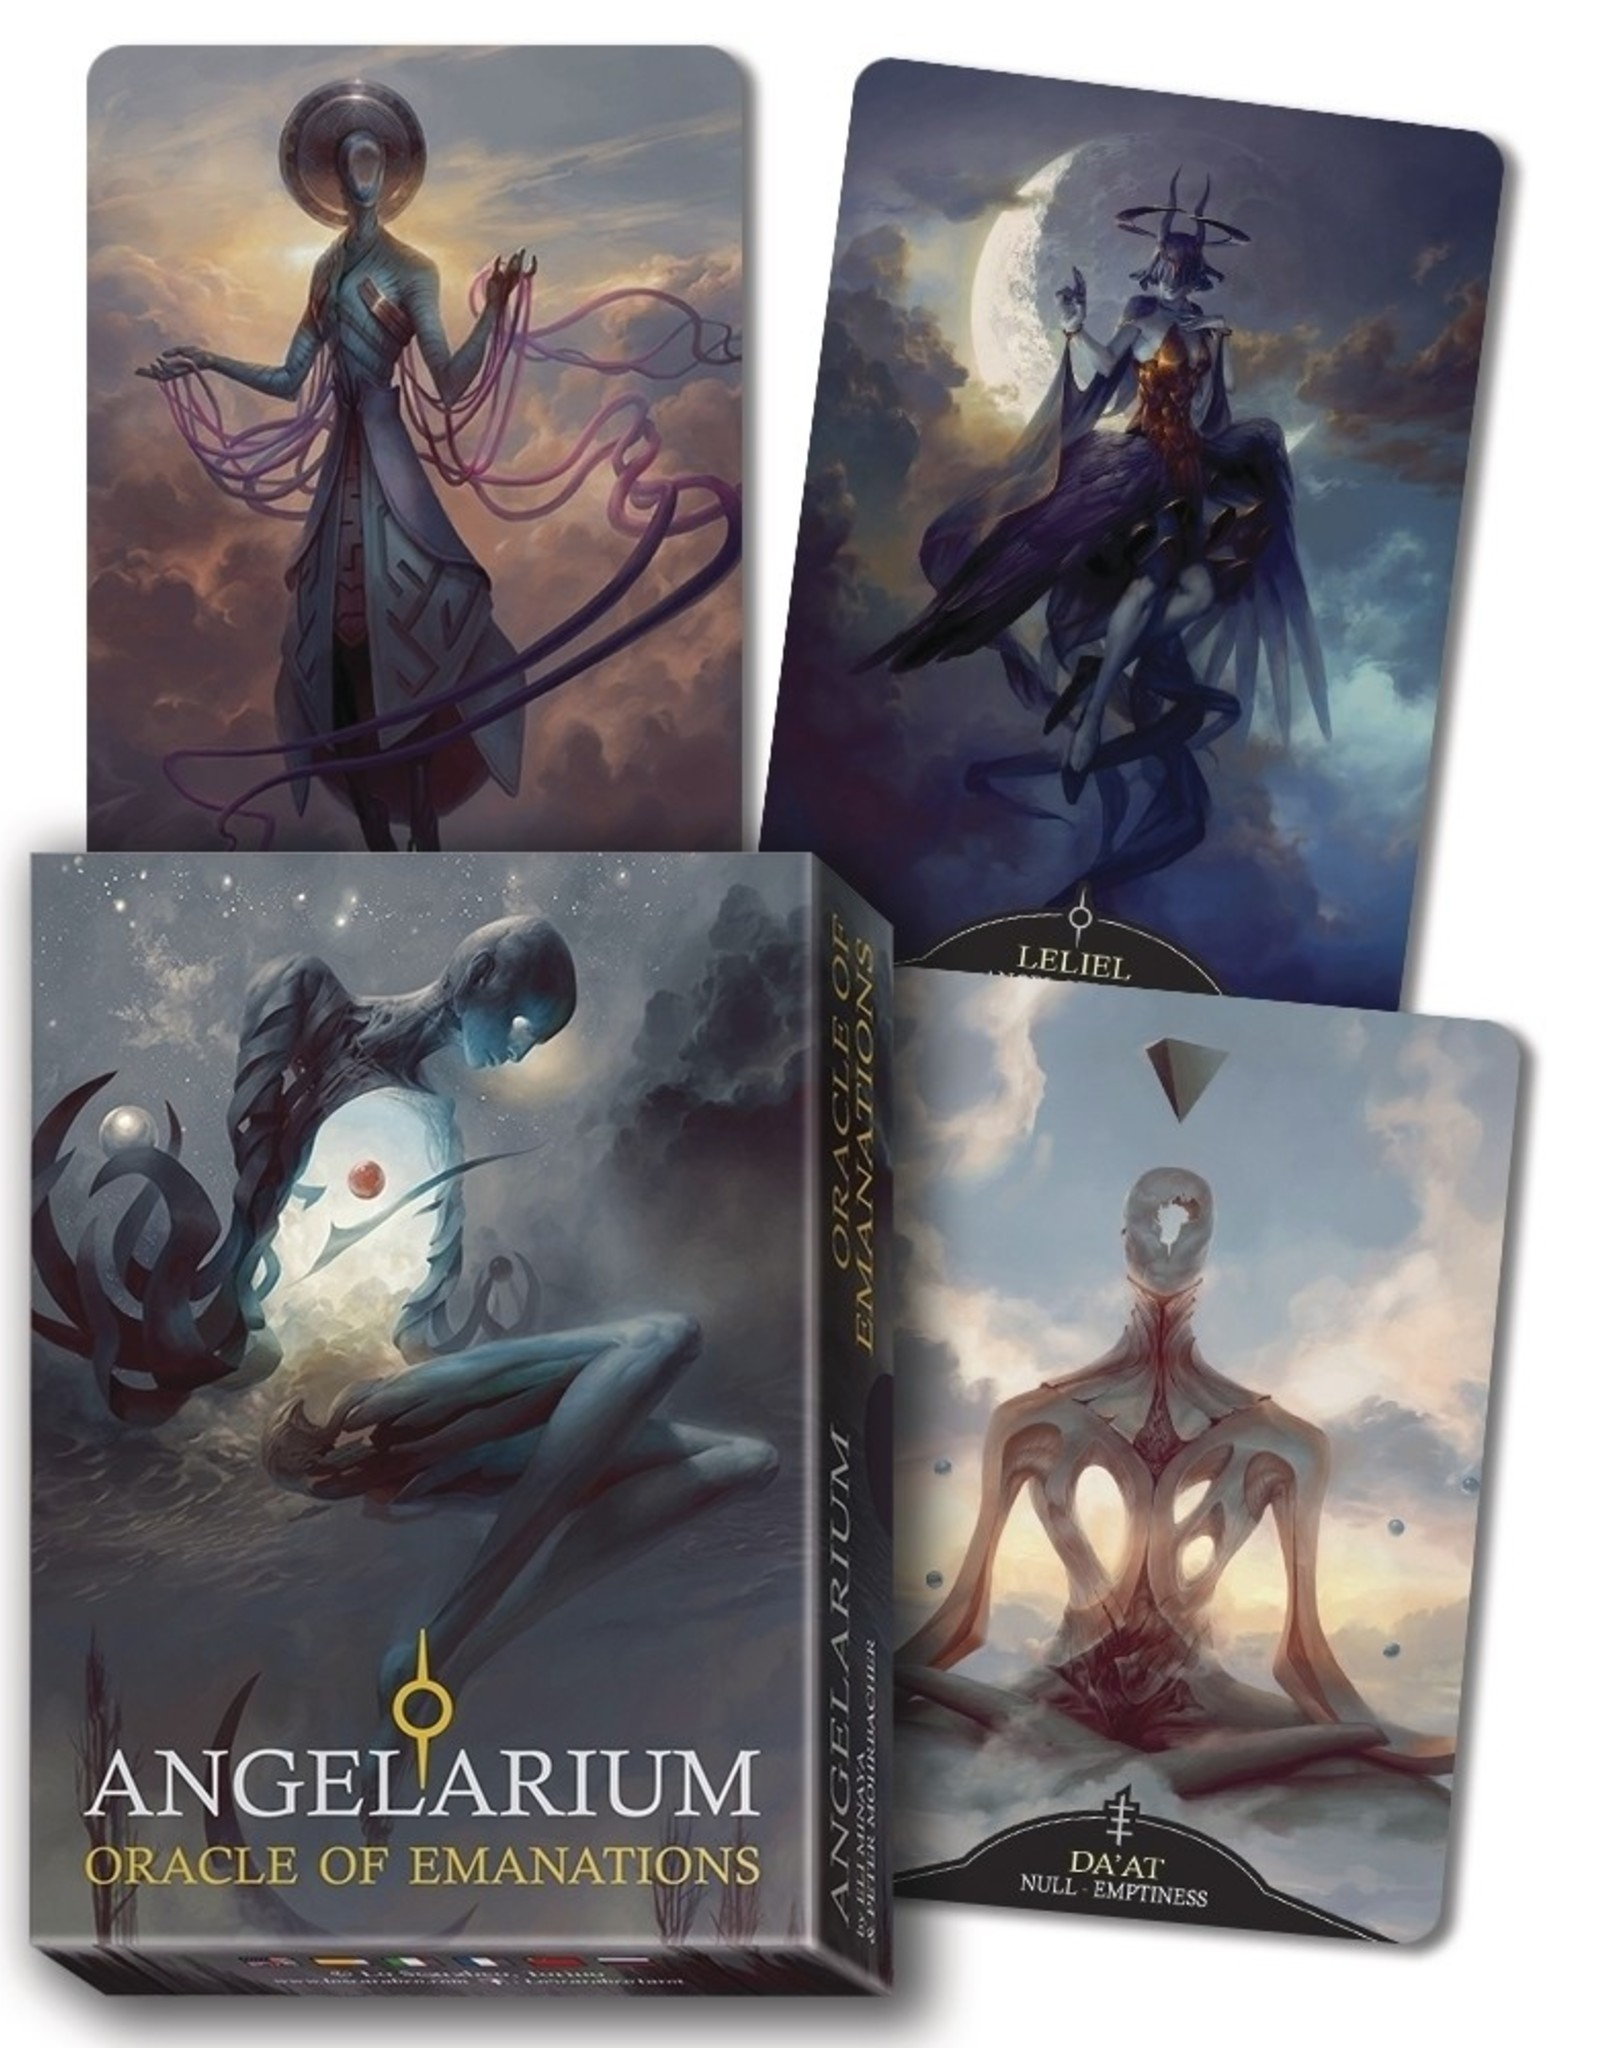 Llewelyn Angelarium: Oracle of Emanations